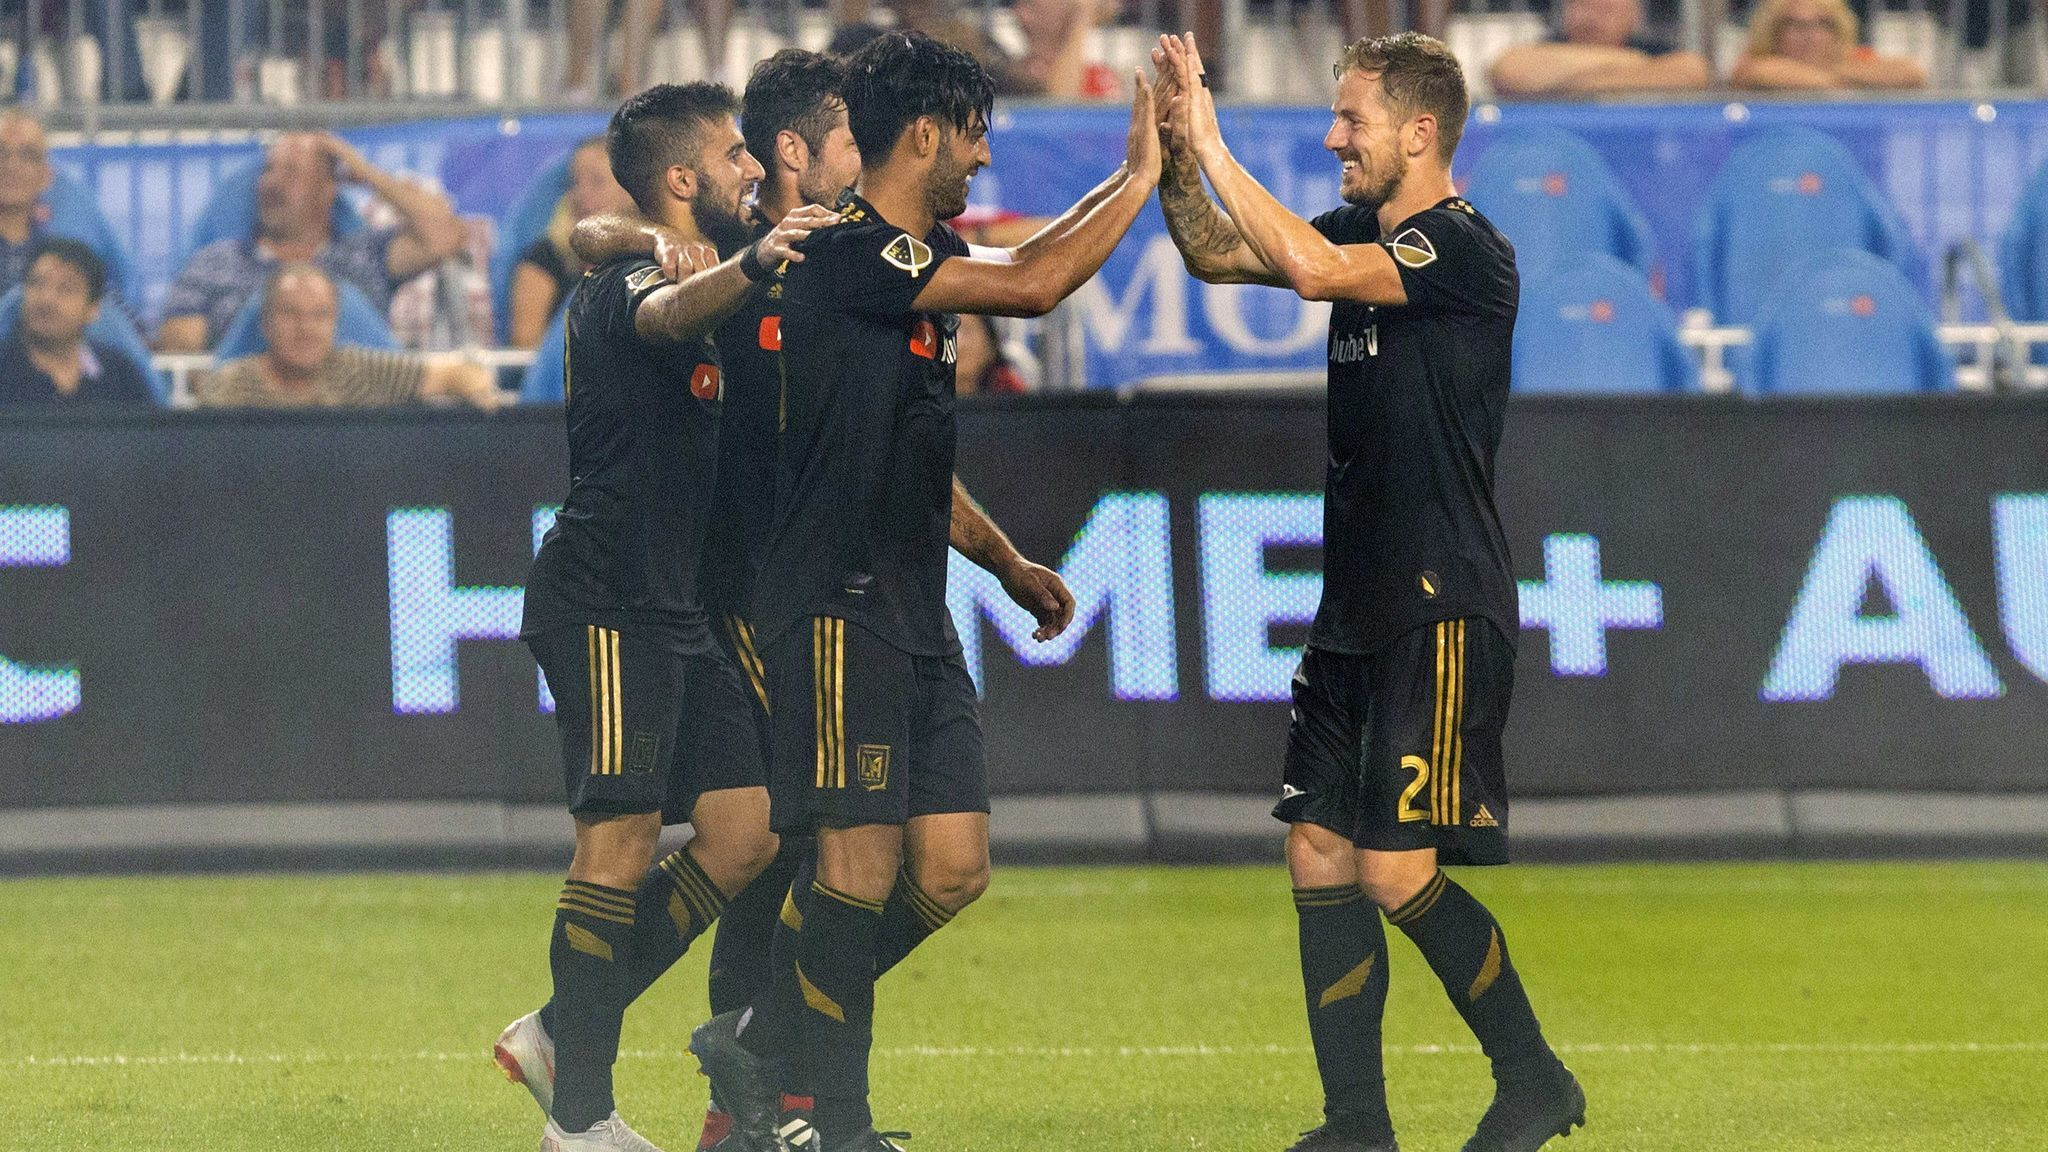 LAFC nearing first step on what it hopes is a long playoff road